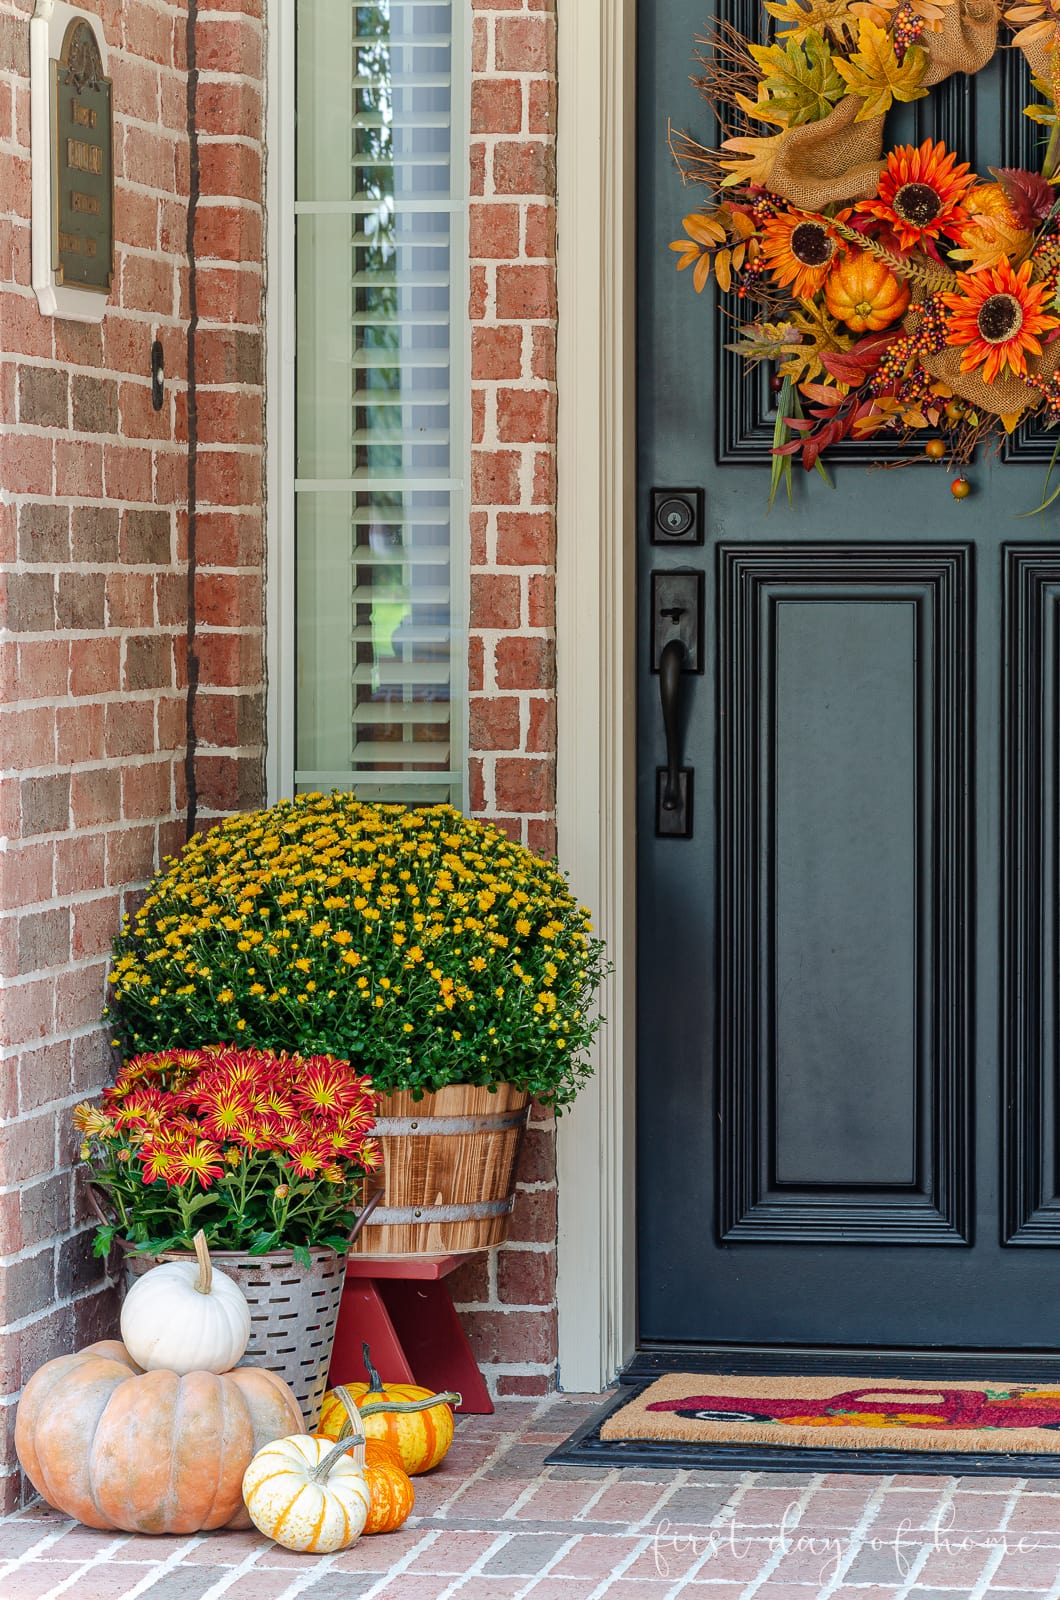 Fall porch decorating ideas with pumpkins, mums, fall welcome mat and fall wreath